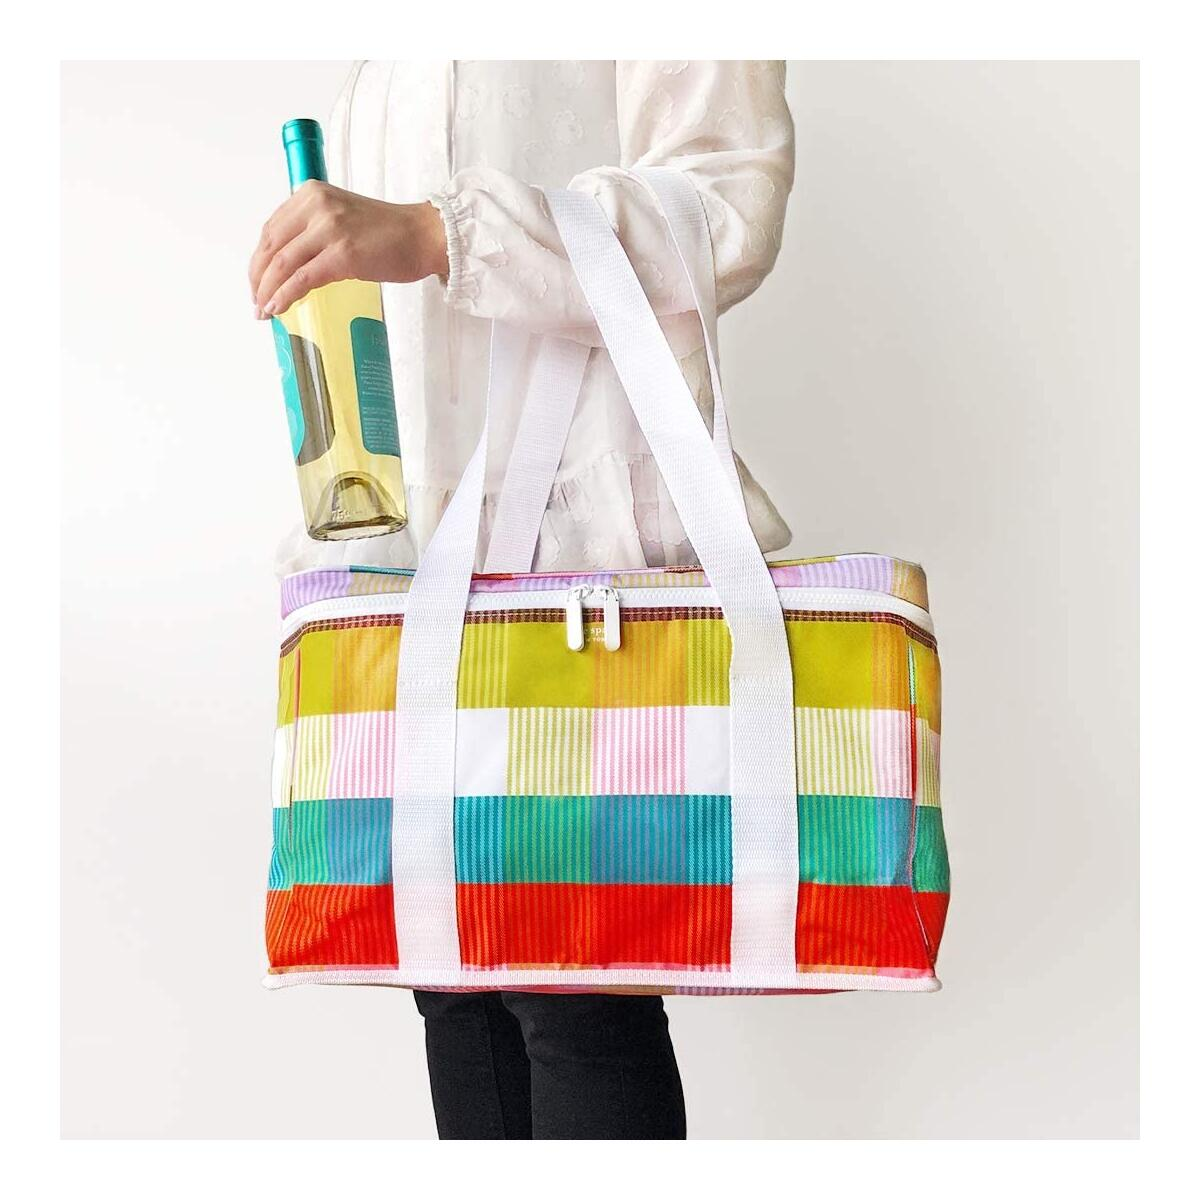 Kate Spade New York Large Capacity Insulated Cooler Bag, Soft Sided Portable Beach Cooler Tote for Women, Rainbow Plaid